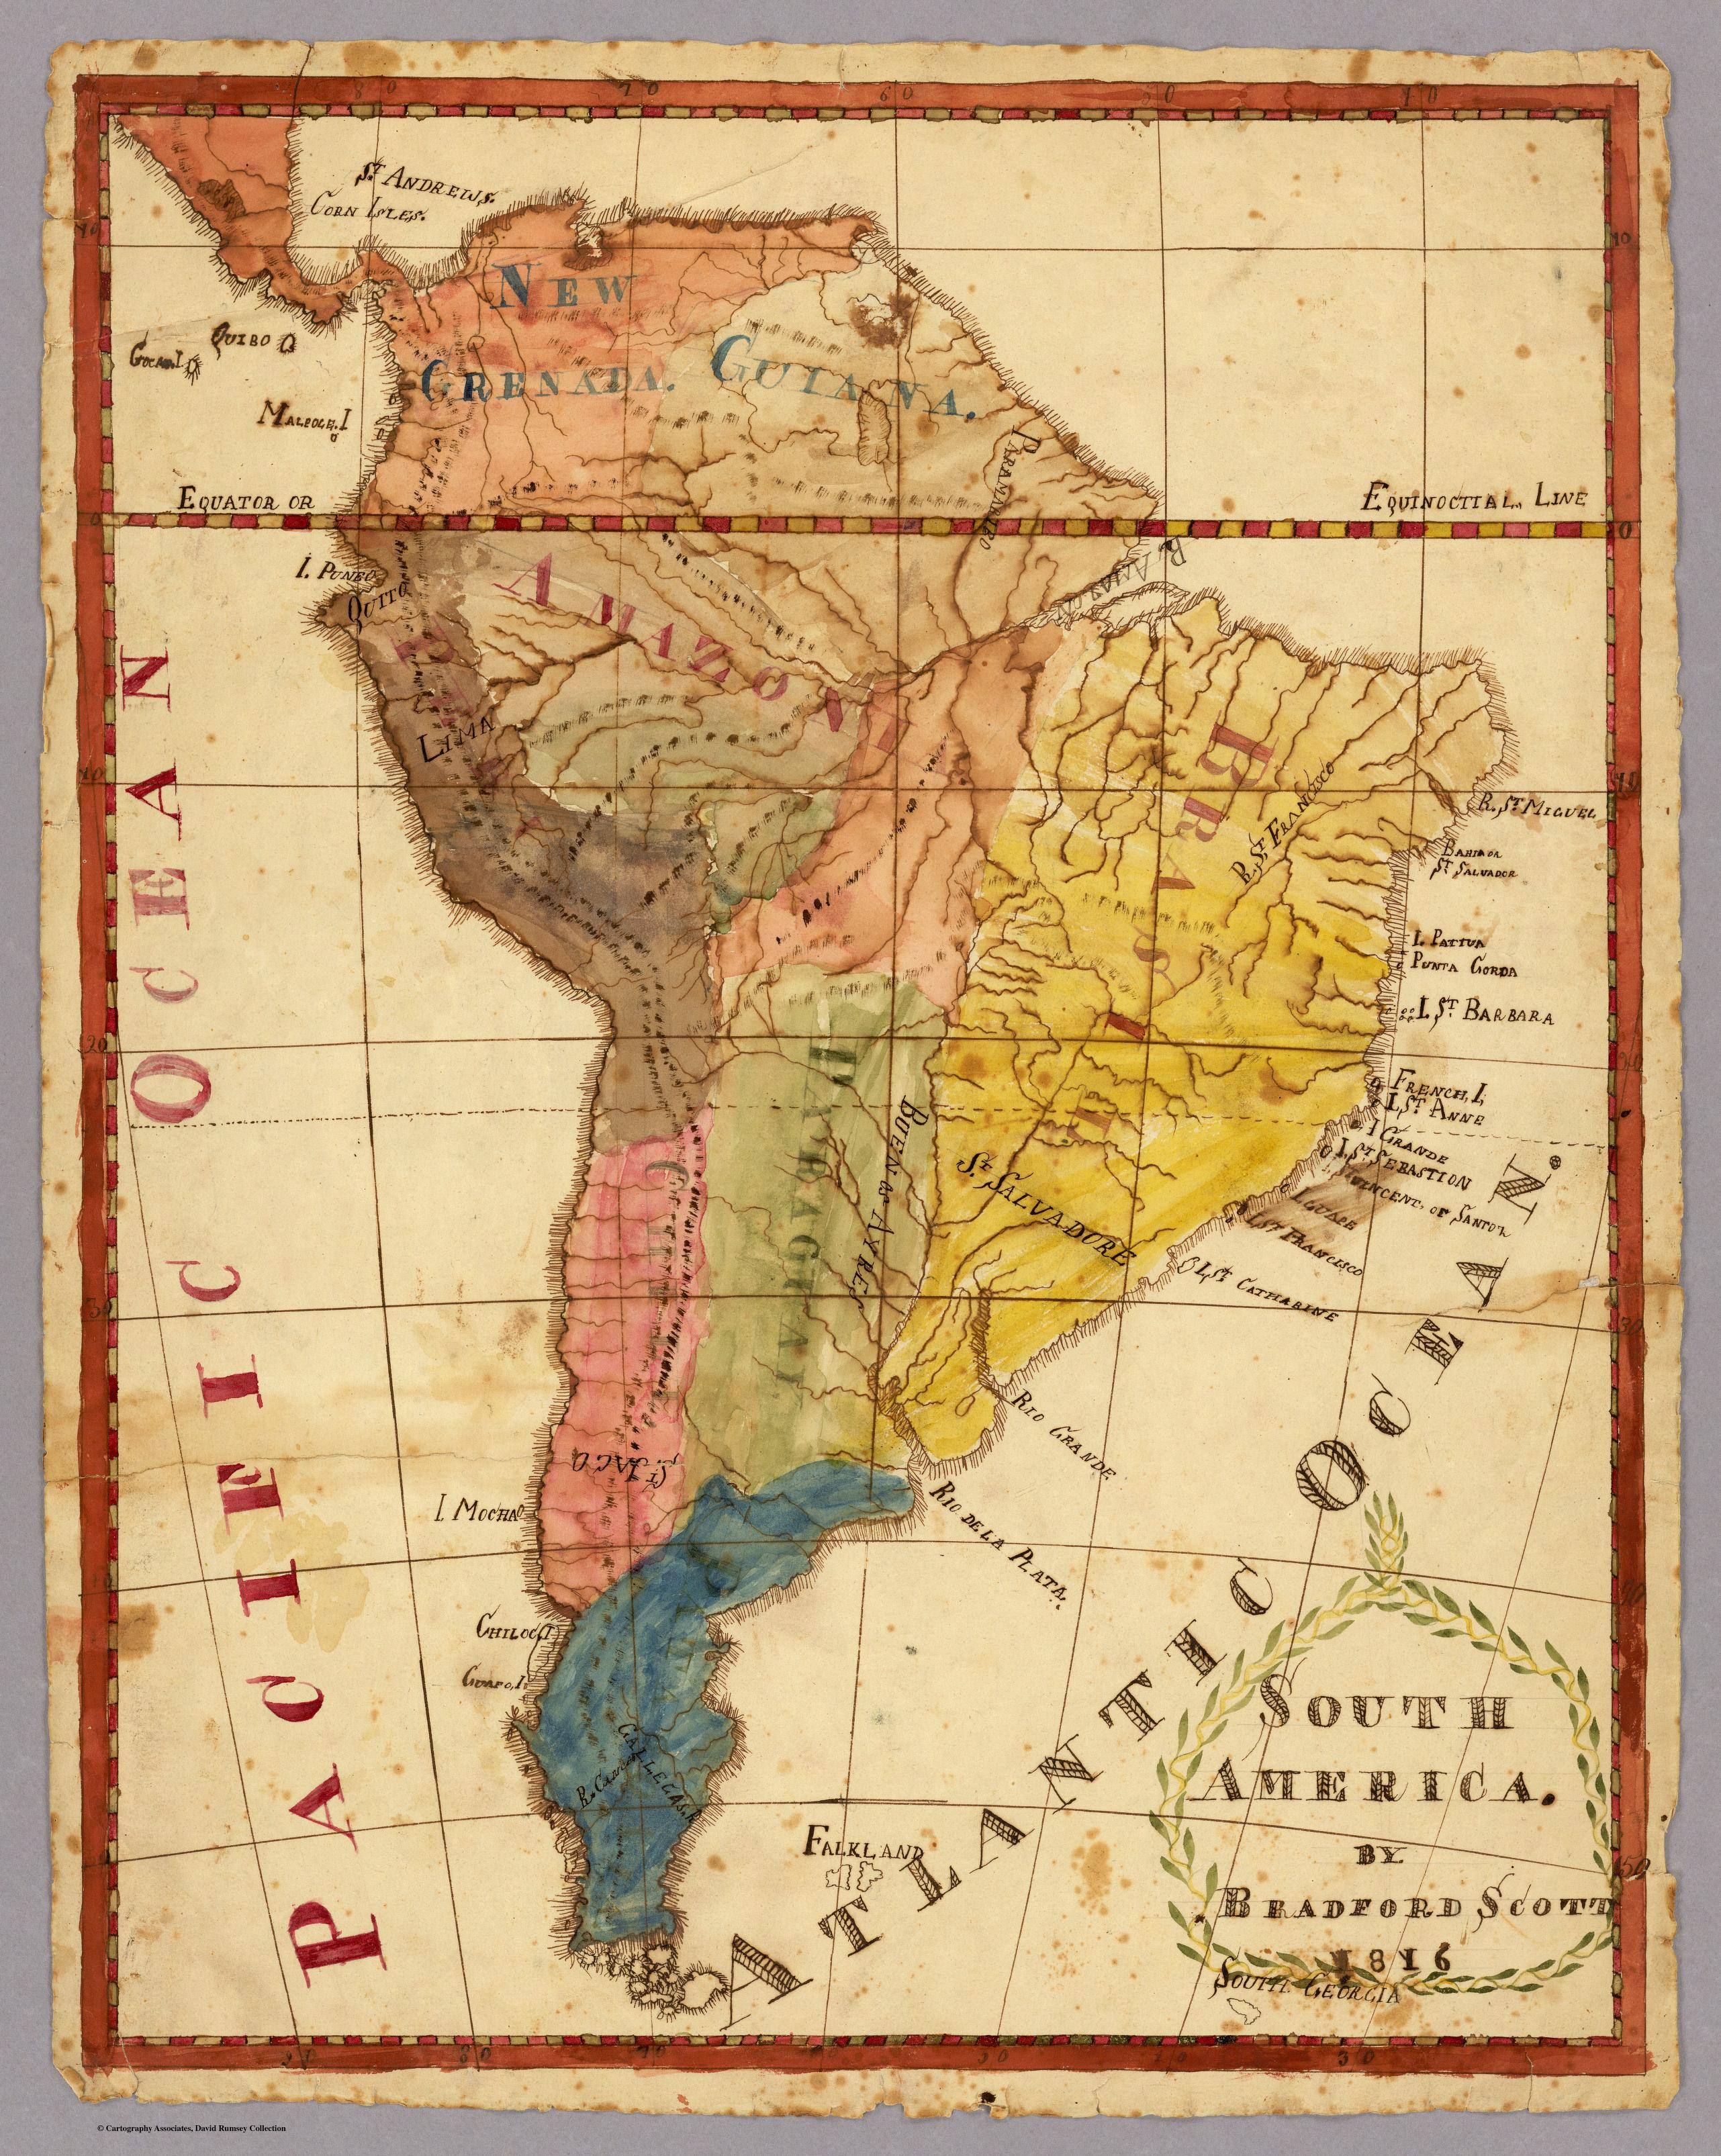 1816 Bradford Scott South America Rumsey large